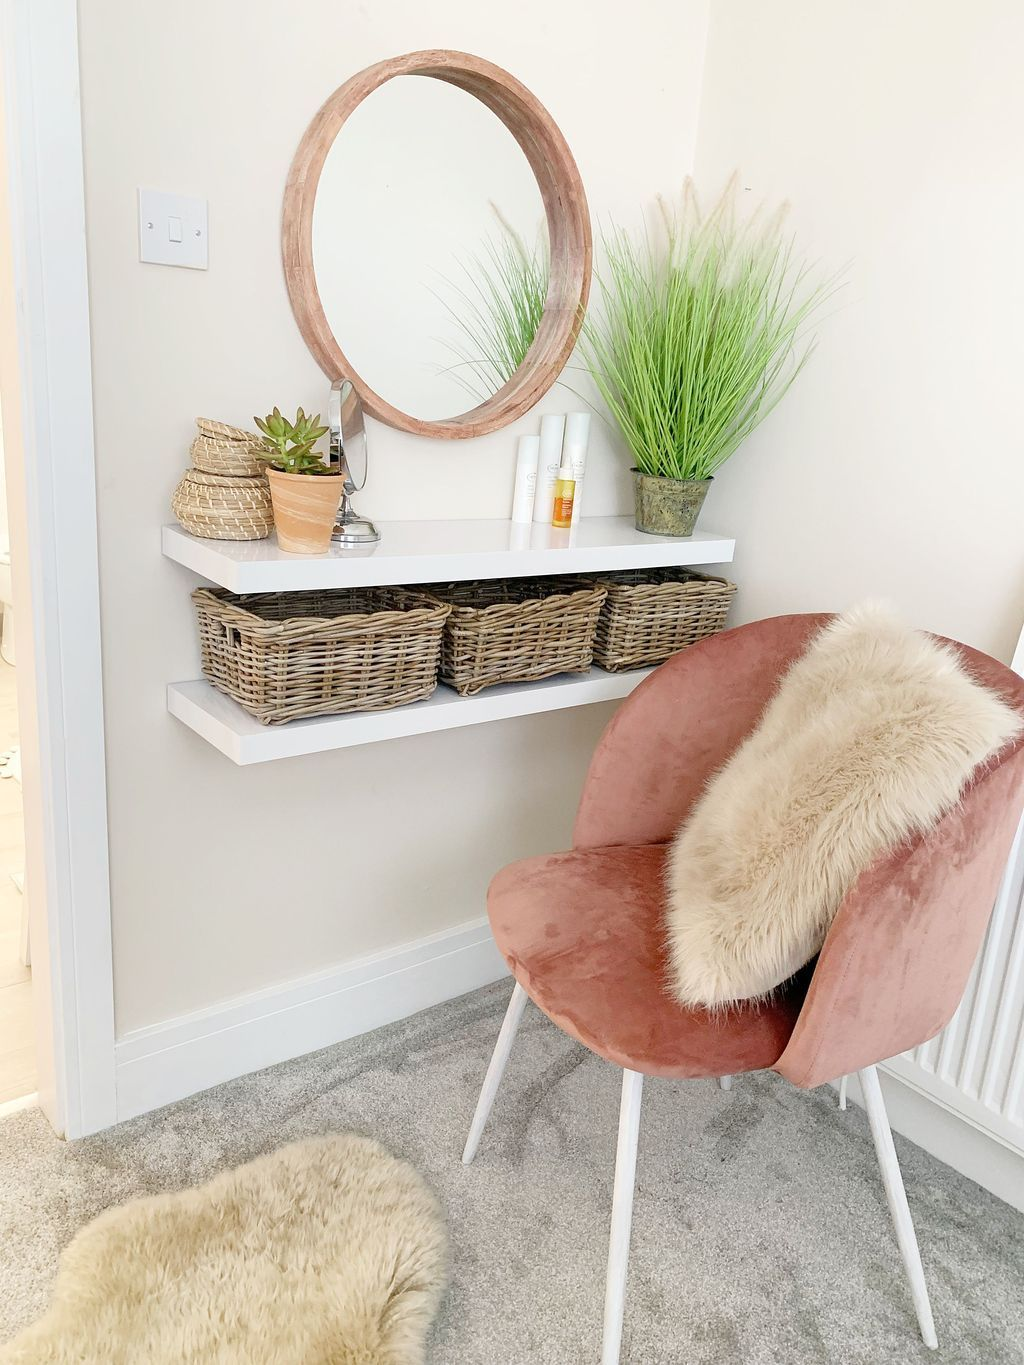 Great Totally Free 40 Amazing Dressing Table Design Ideas To Try Asap Tips Investing In A Dressing Table Design Bedroom Decor Inspiration Room Decor Bedroom We make things easy to provide very special celebration they'll always remember. dressing table design